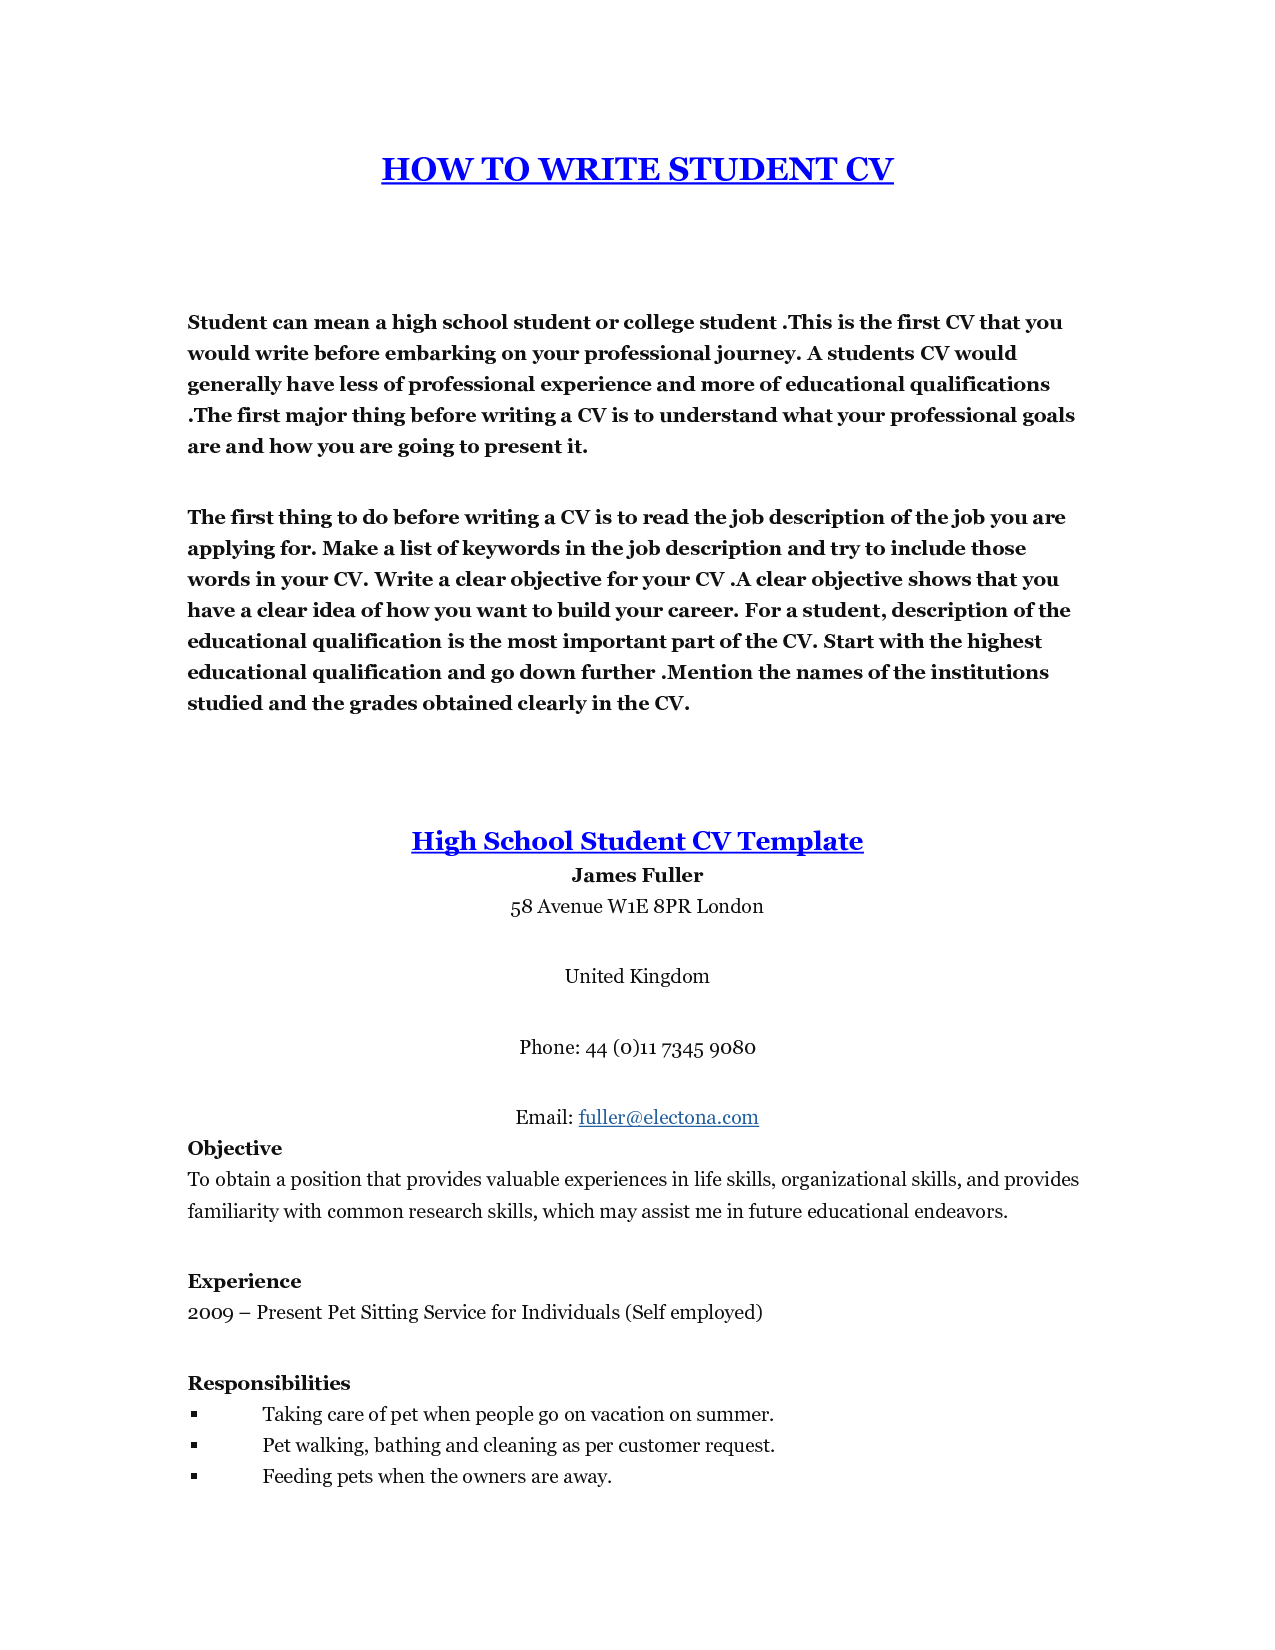 Student Resume Template httpwwwjobresumewebsitestudent